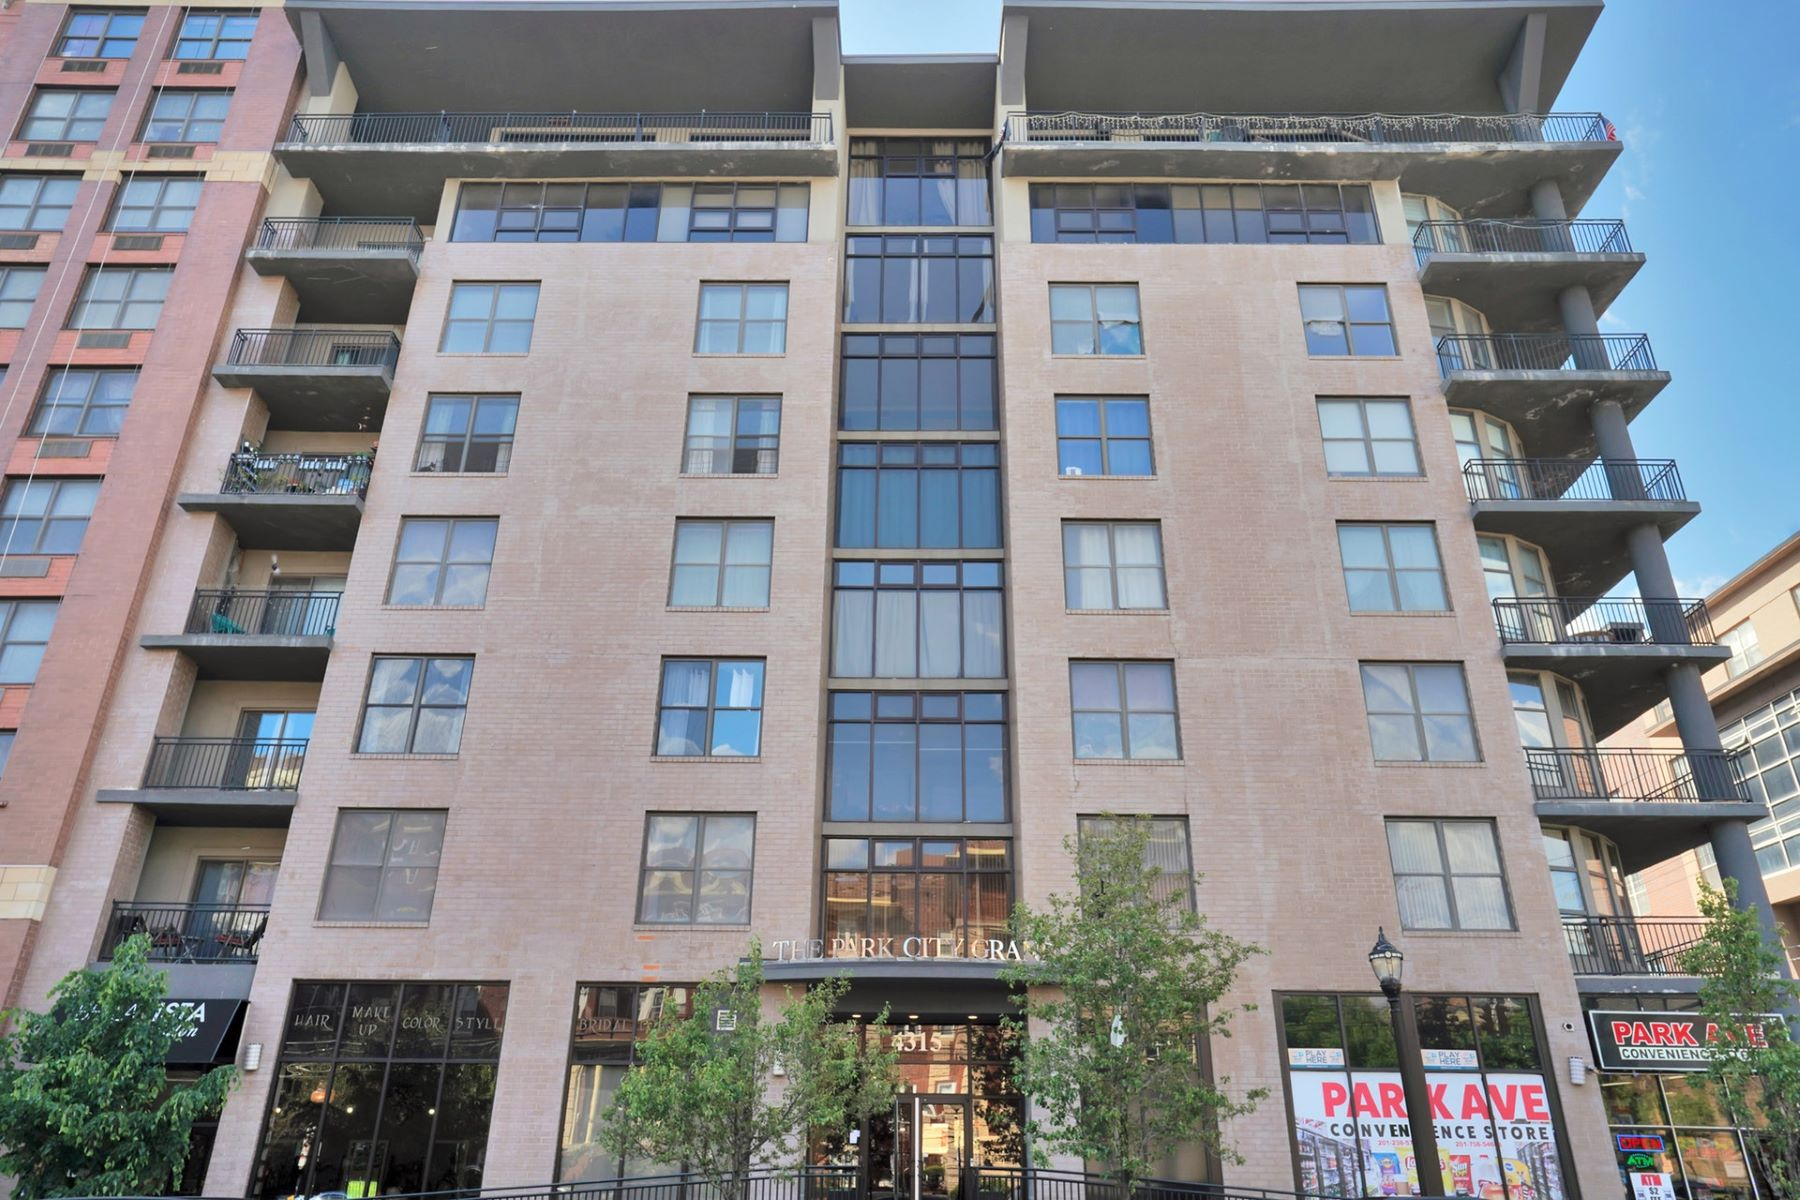 Condominiums for Sale at Park City Grand 4315 Park Ave #6K, Union City, New Jersey 07087 United States